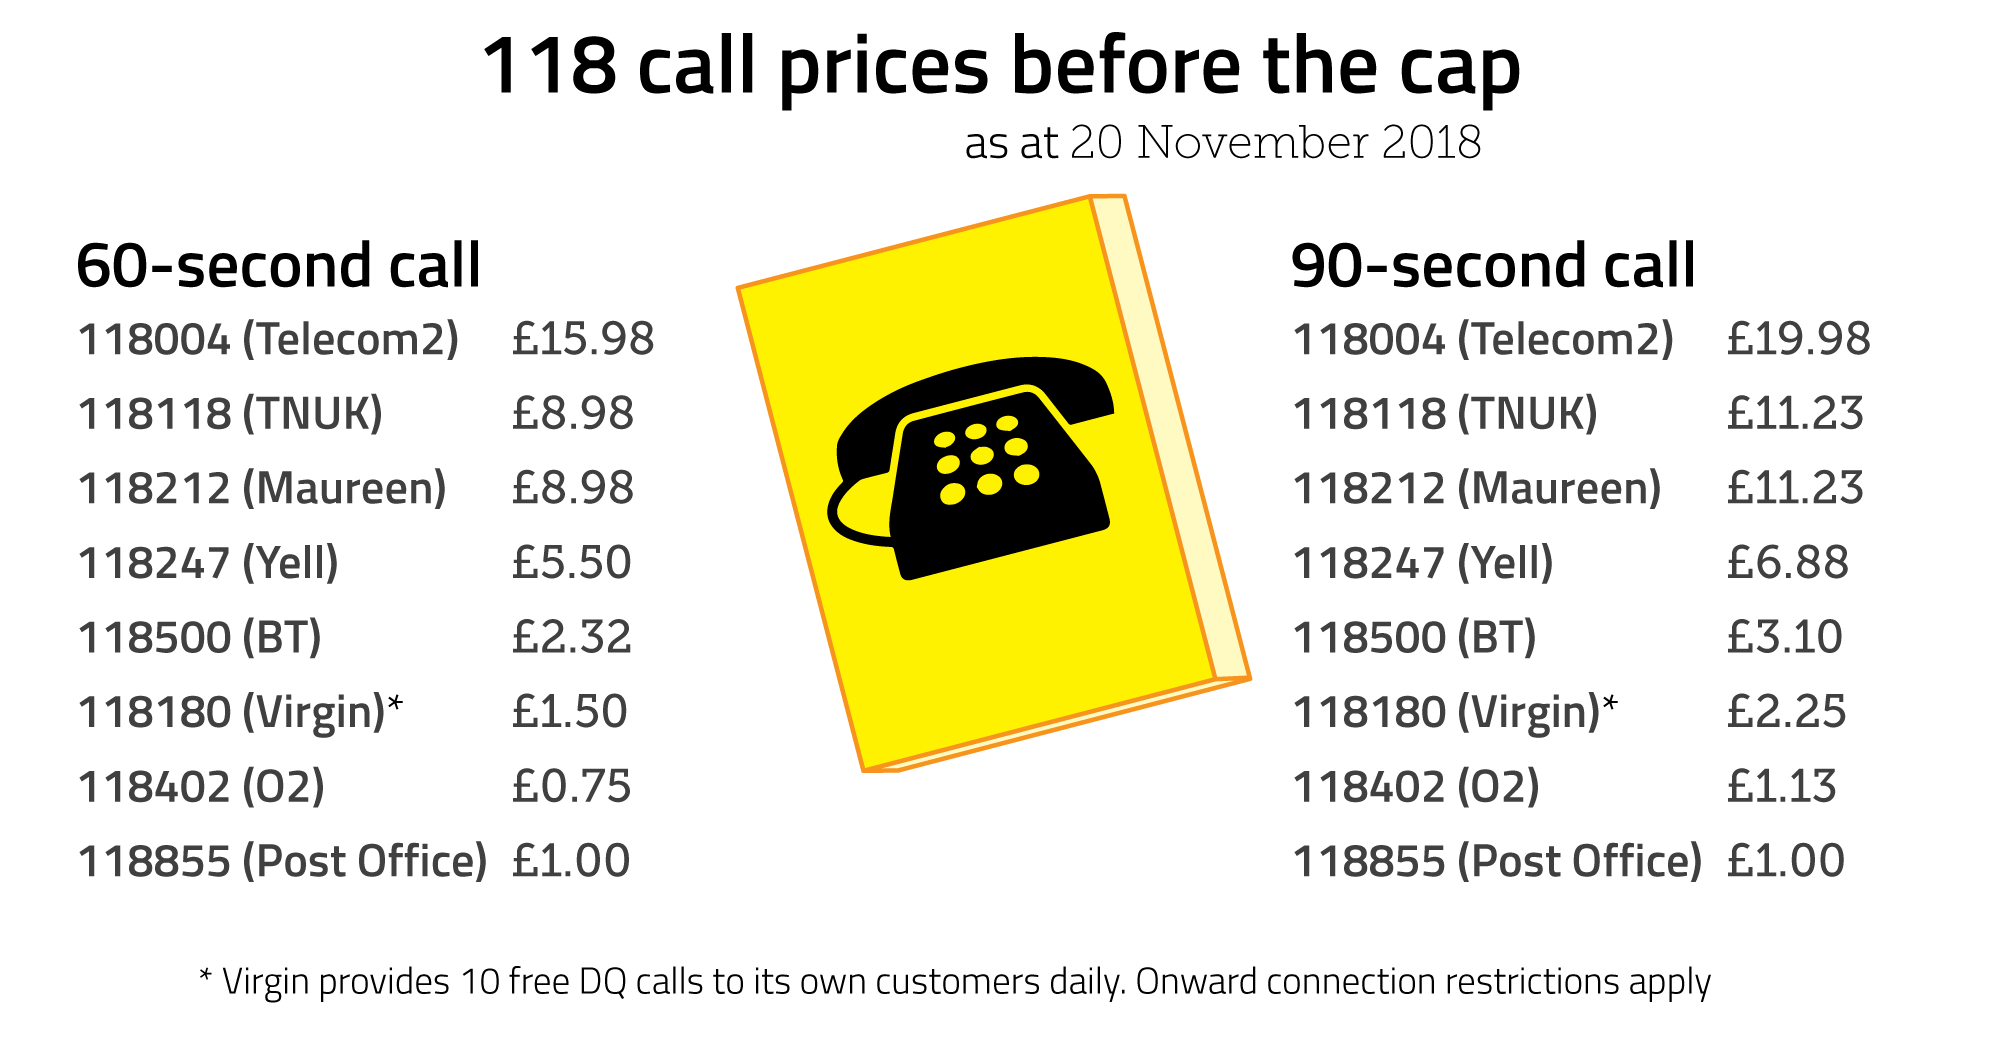 Graphic illustrating the price of a 118 call before the cap.